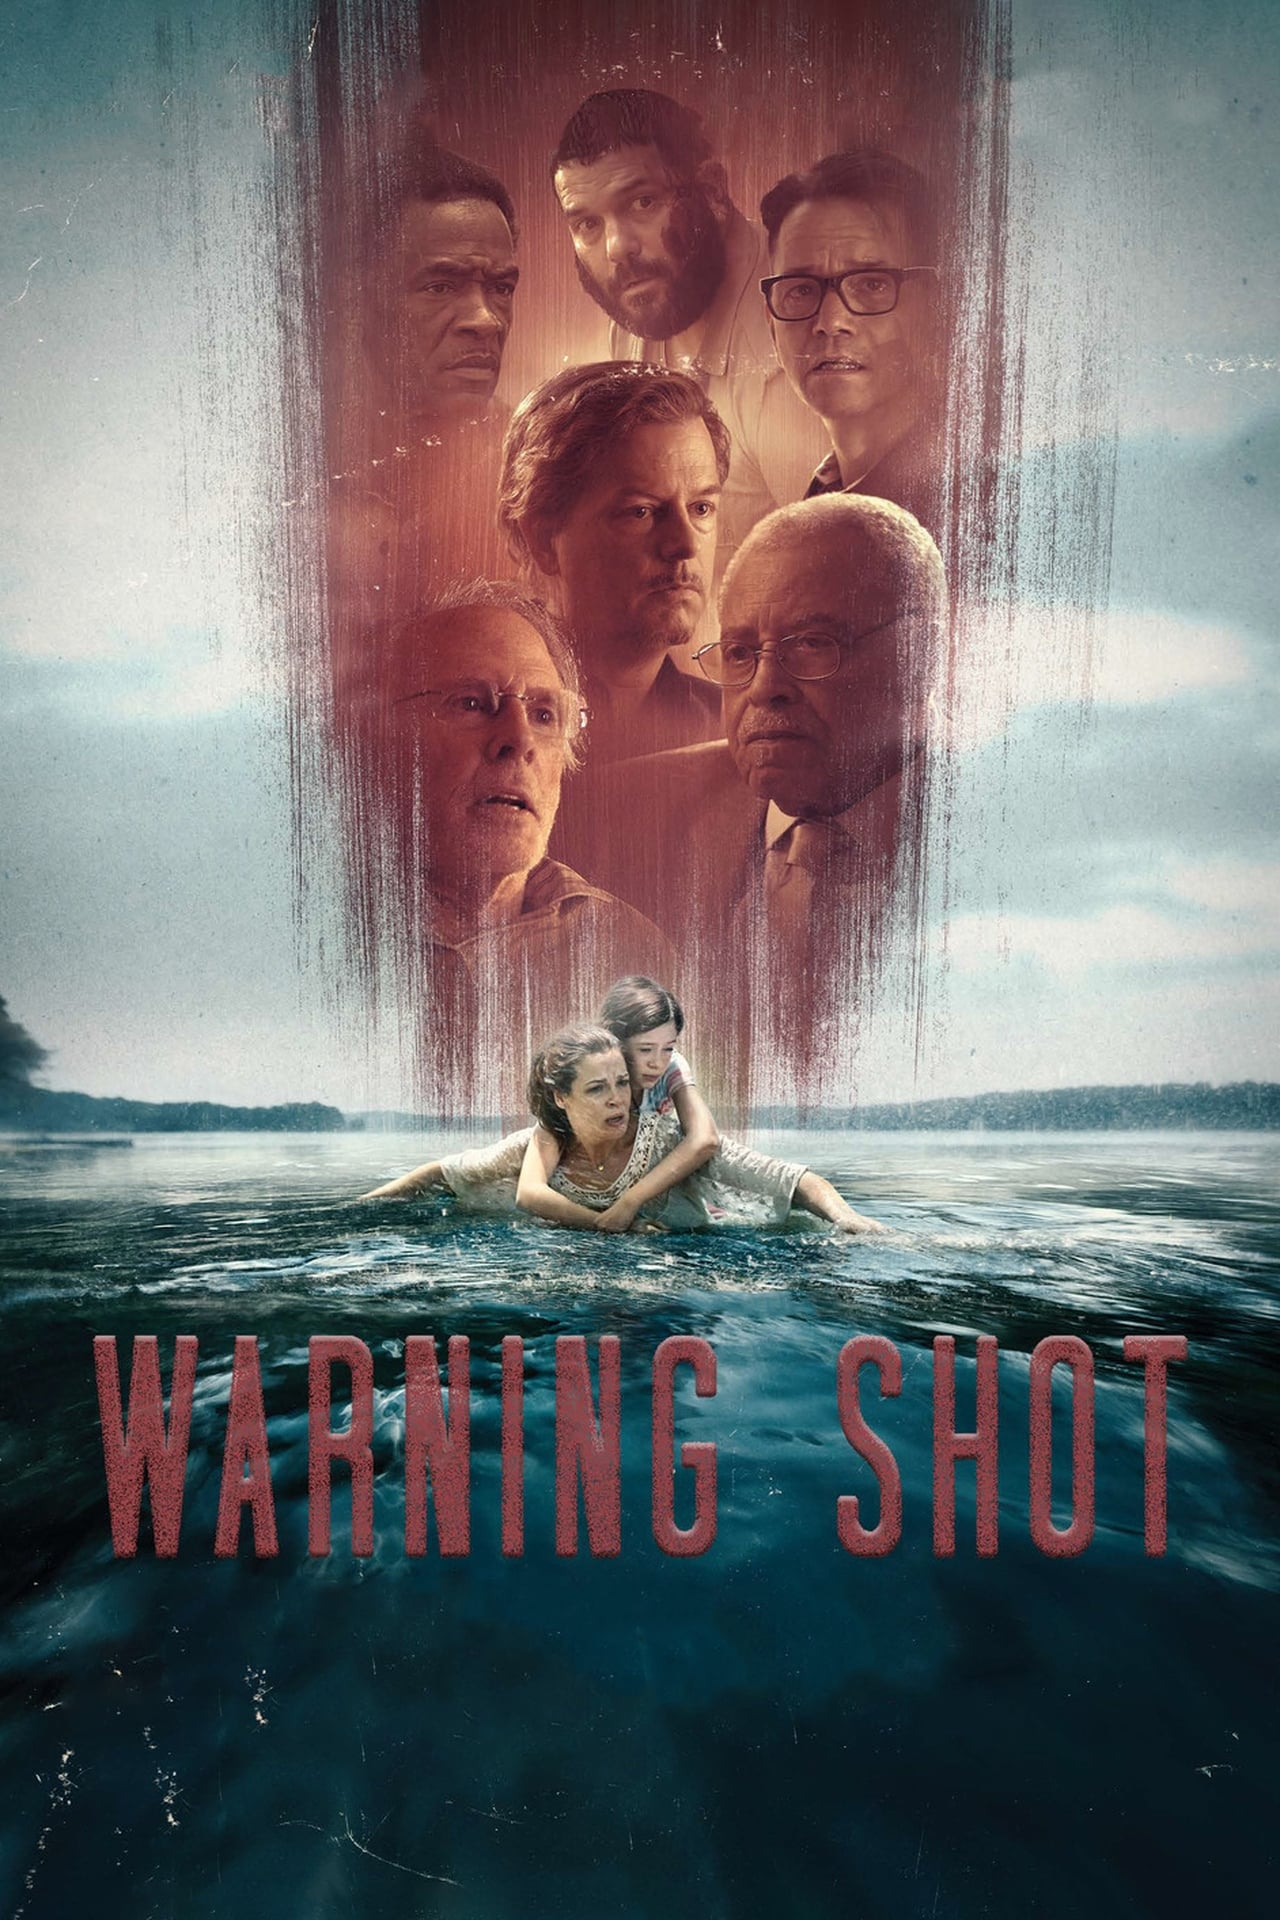 Warning Shot (2018) putlockers cafe